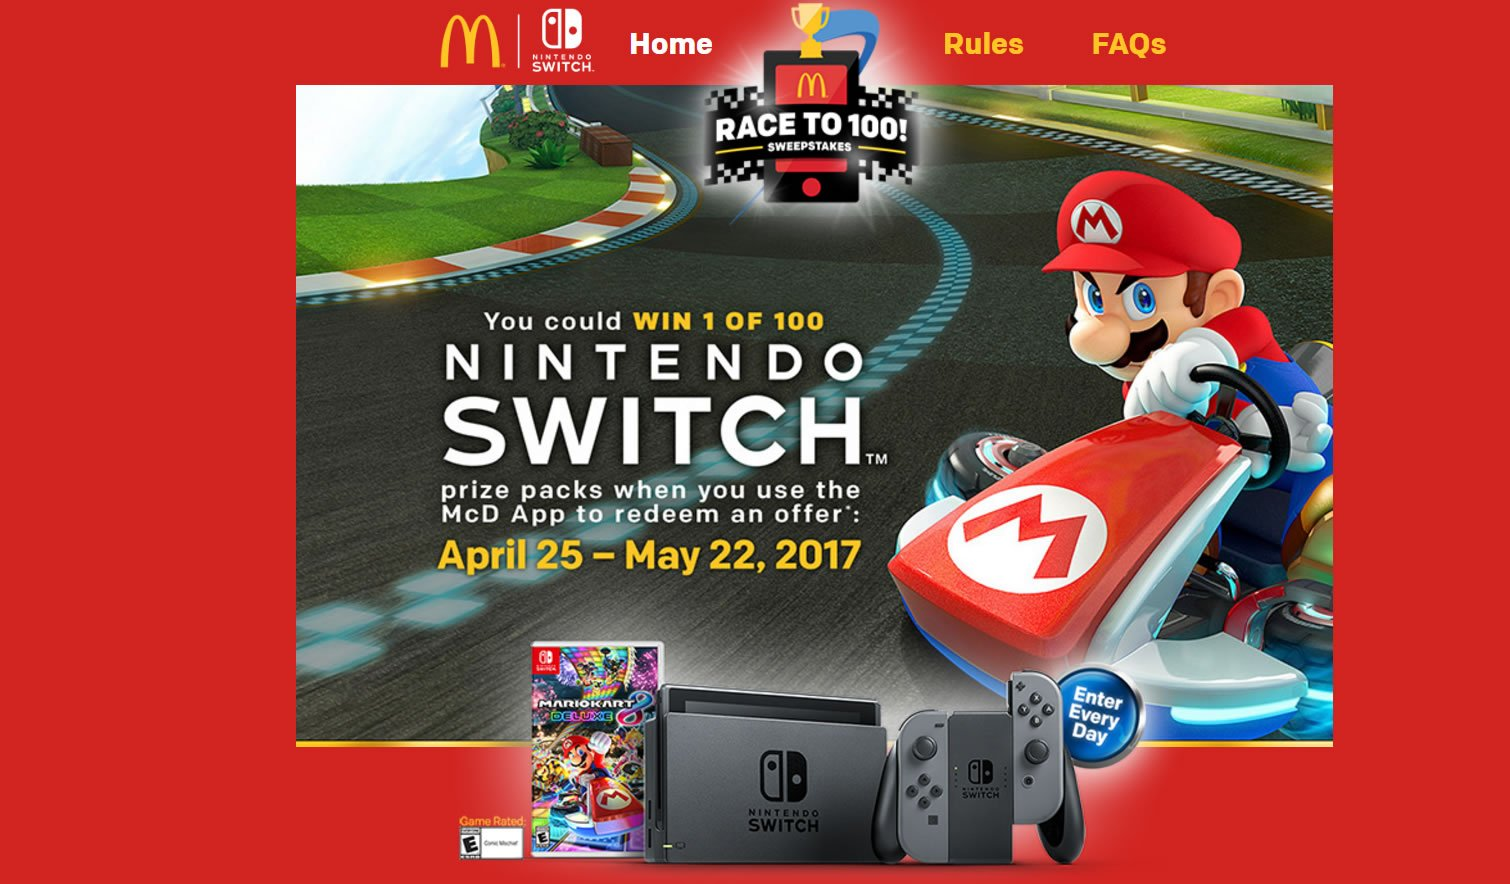 Modojo | McDonald's Is Now Running A Nintendo Switch Giveaway